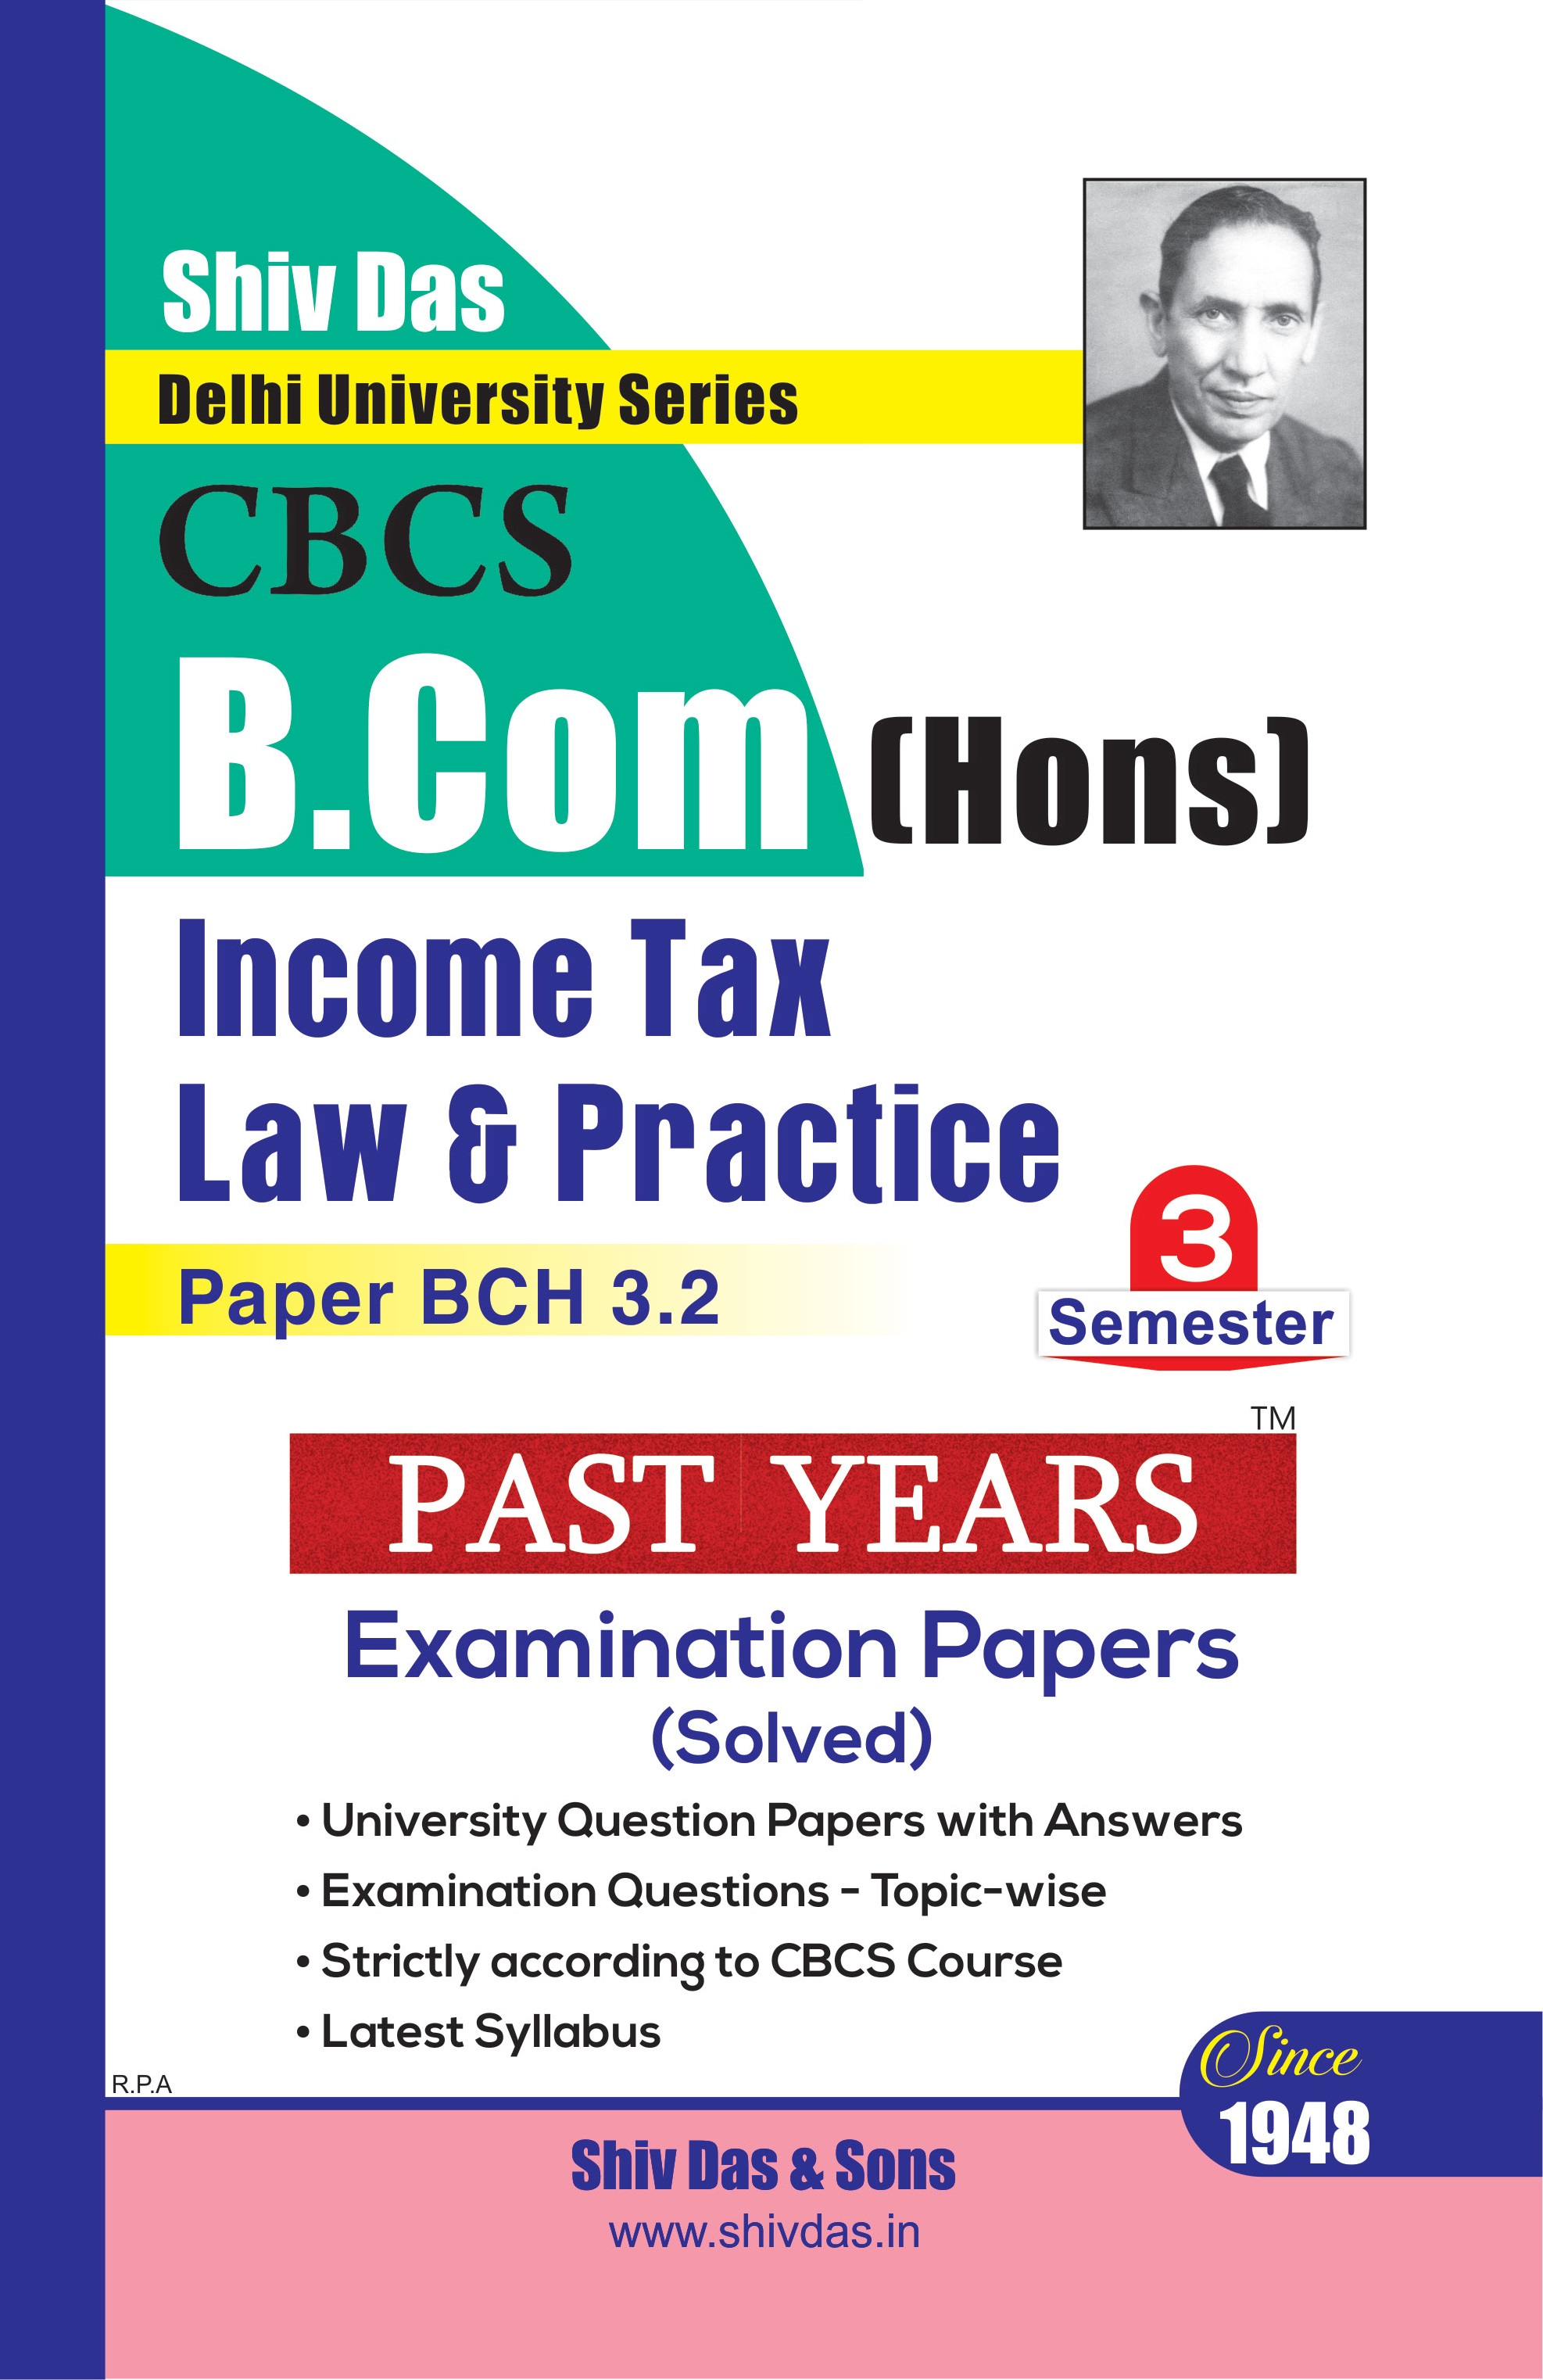 Income Tax Law & Practice for B.Com Hons Semester 3 for Delhi University by Shiv Das